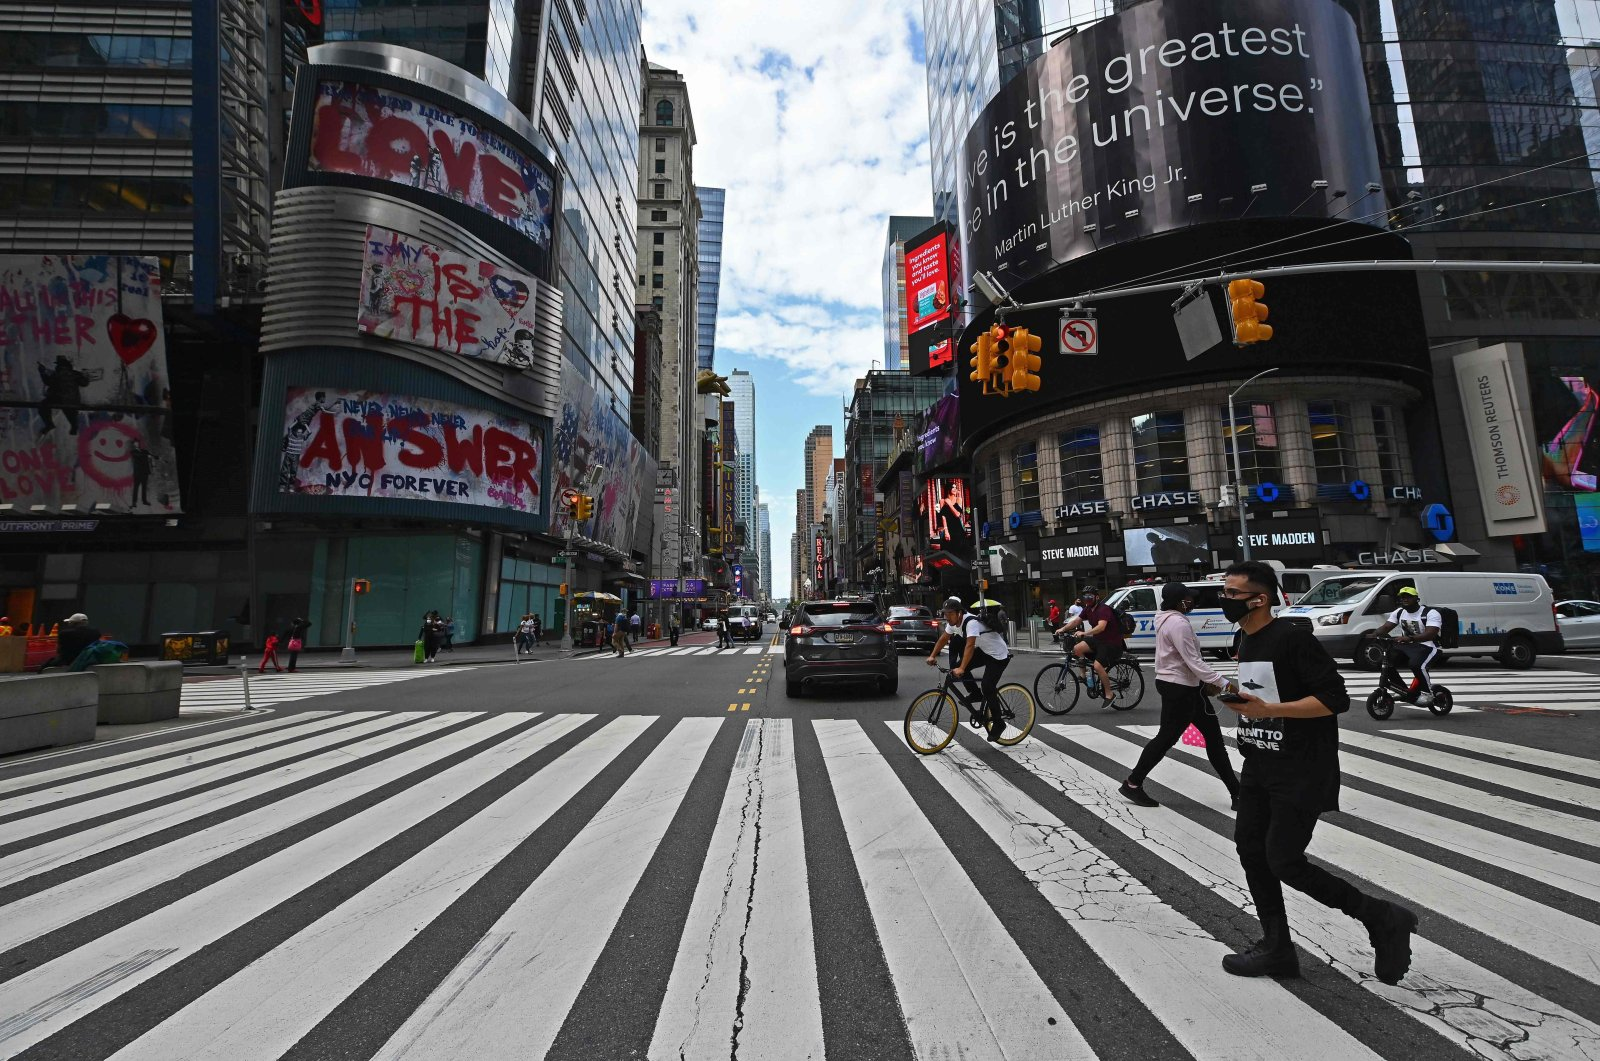 People cross the street near Time Square, New York City, Sept. 28, 2020. (AFP Photo)